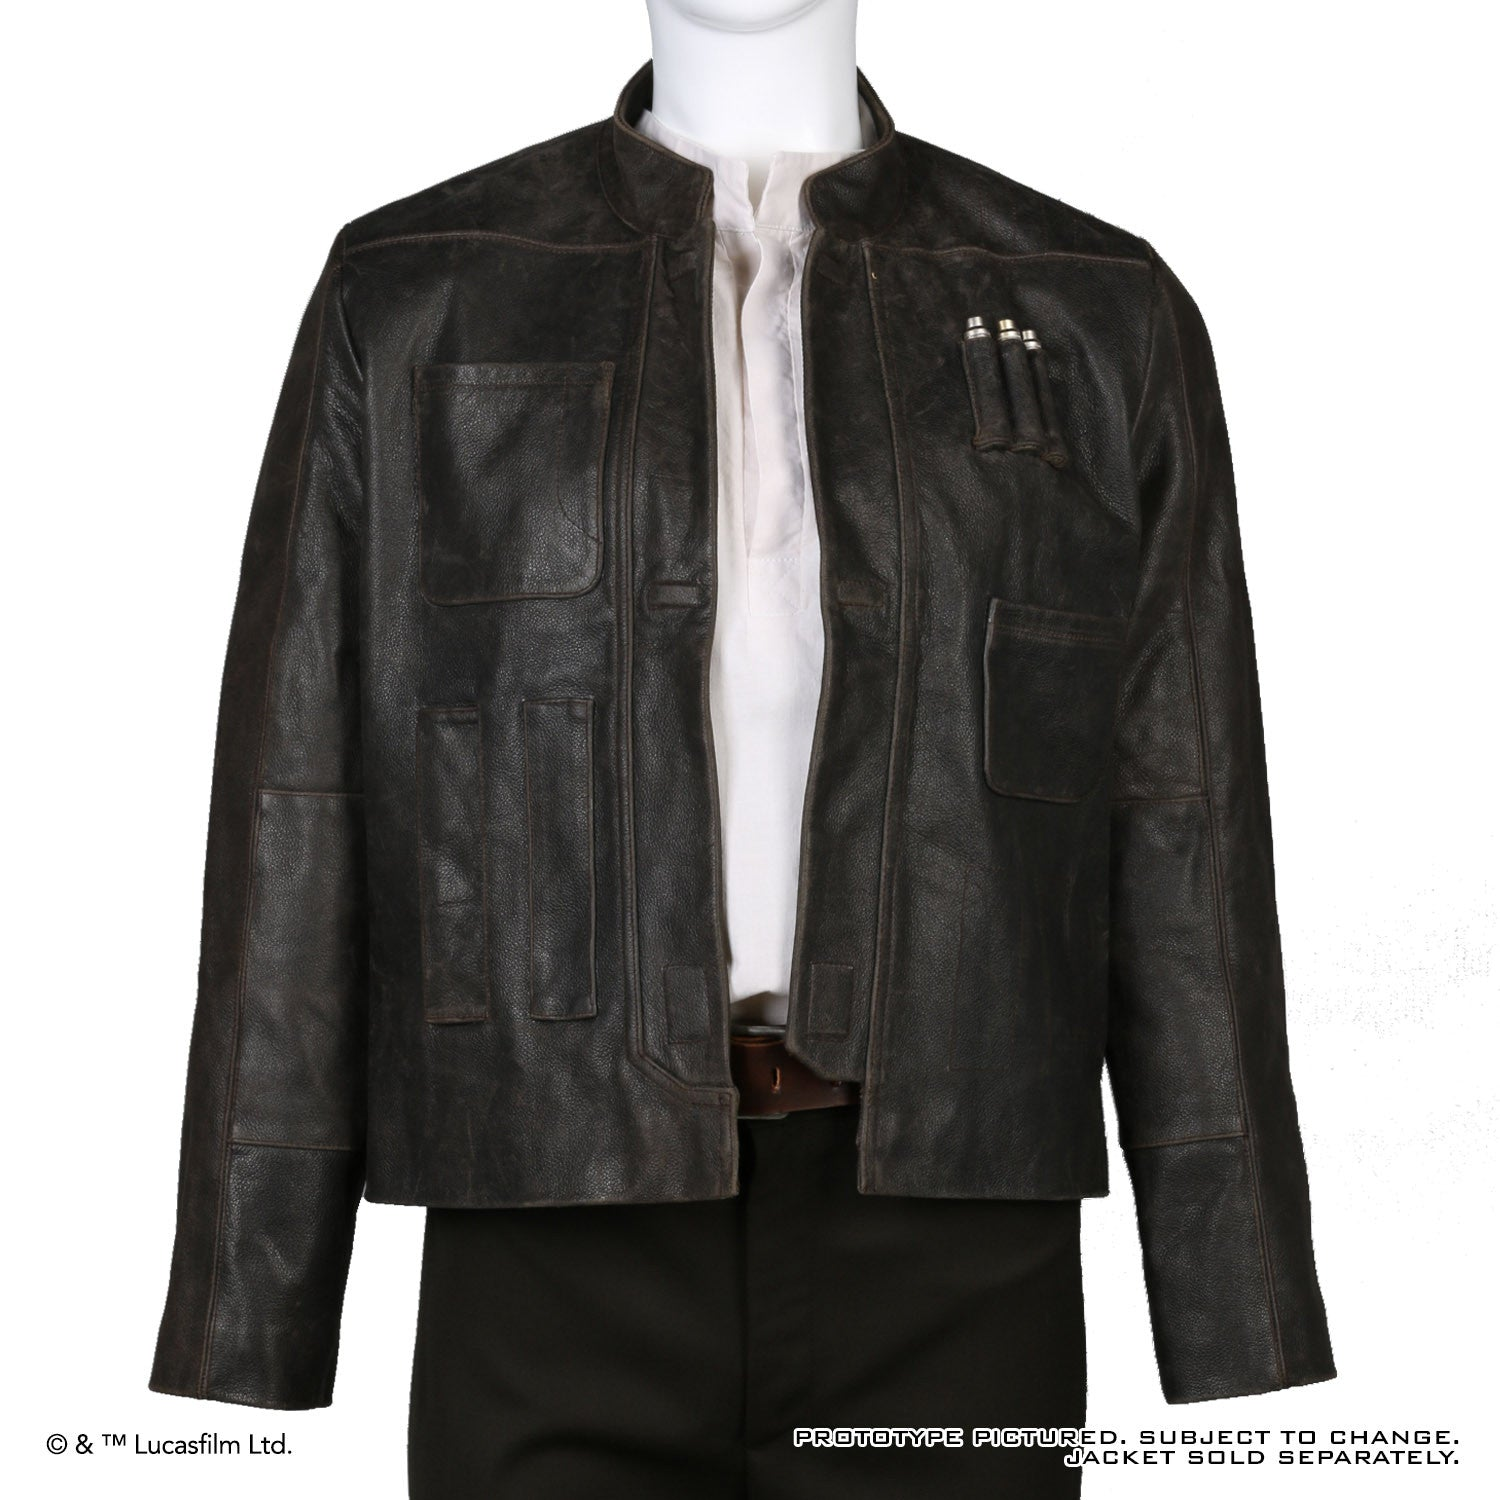 8a390dac3 STAR WARS™: THE FORCE AWAKENS: Han Solo Jacket (Pre-order)